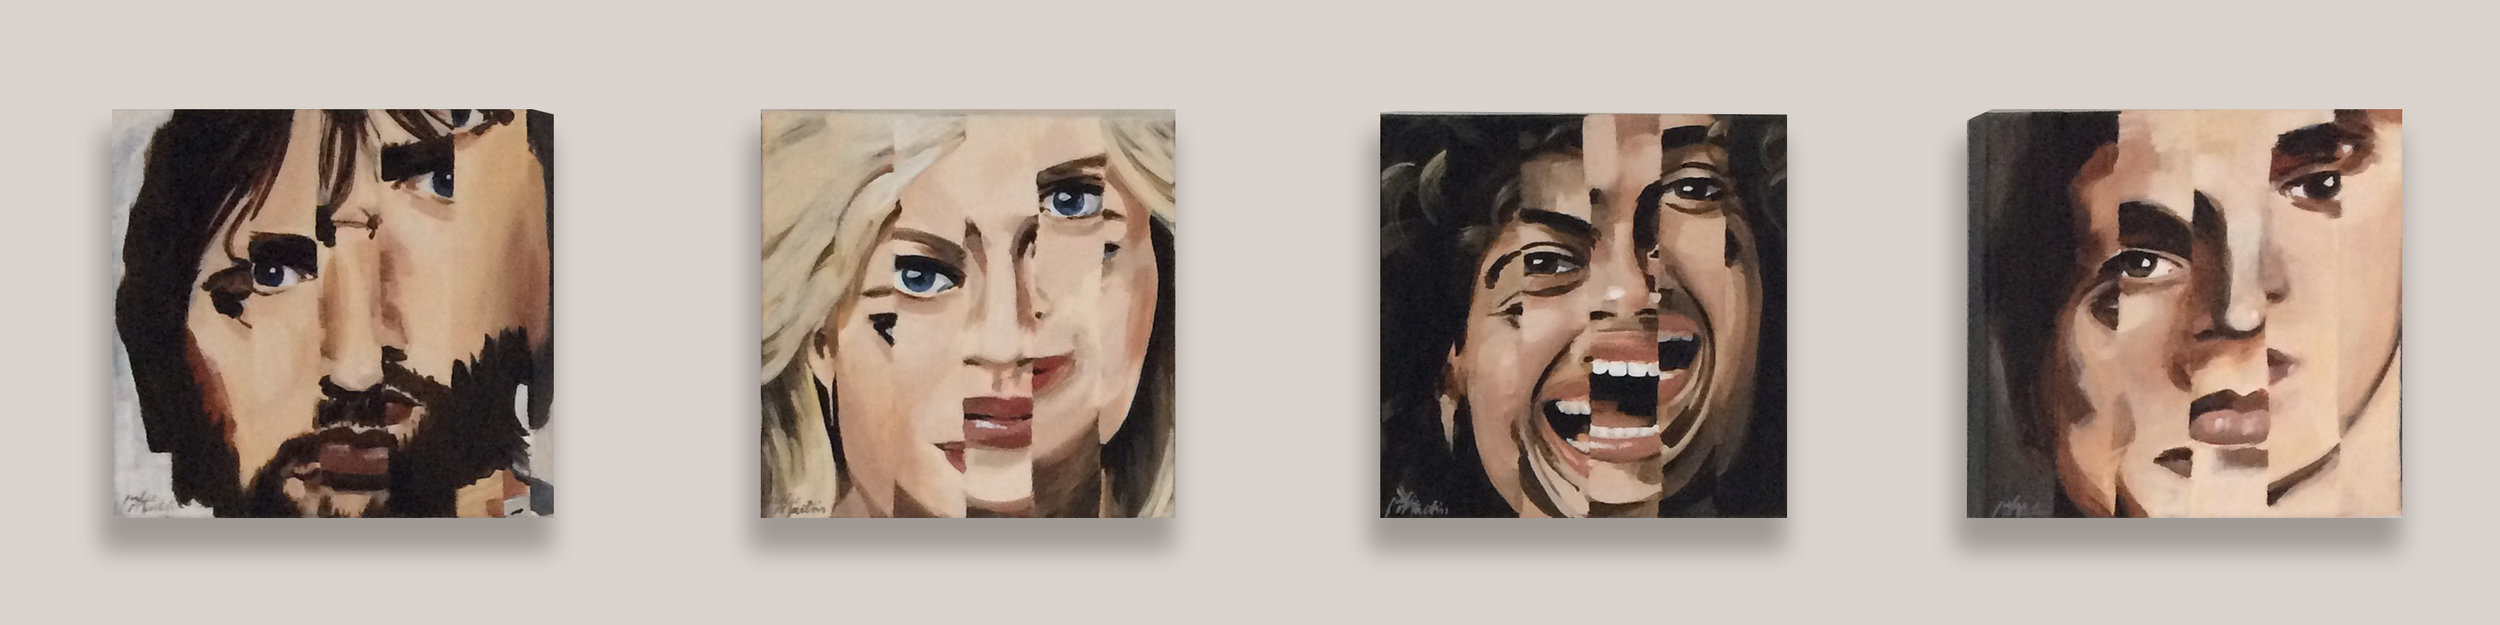 "4 Faces • Acrylic on wrapped canvas • Each 8"" x 8"" x 1.5"" • Fragmented portraits with expressive personalities."